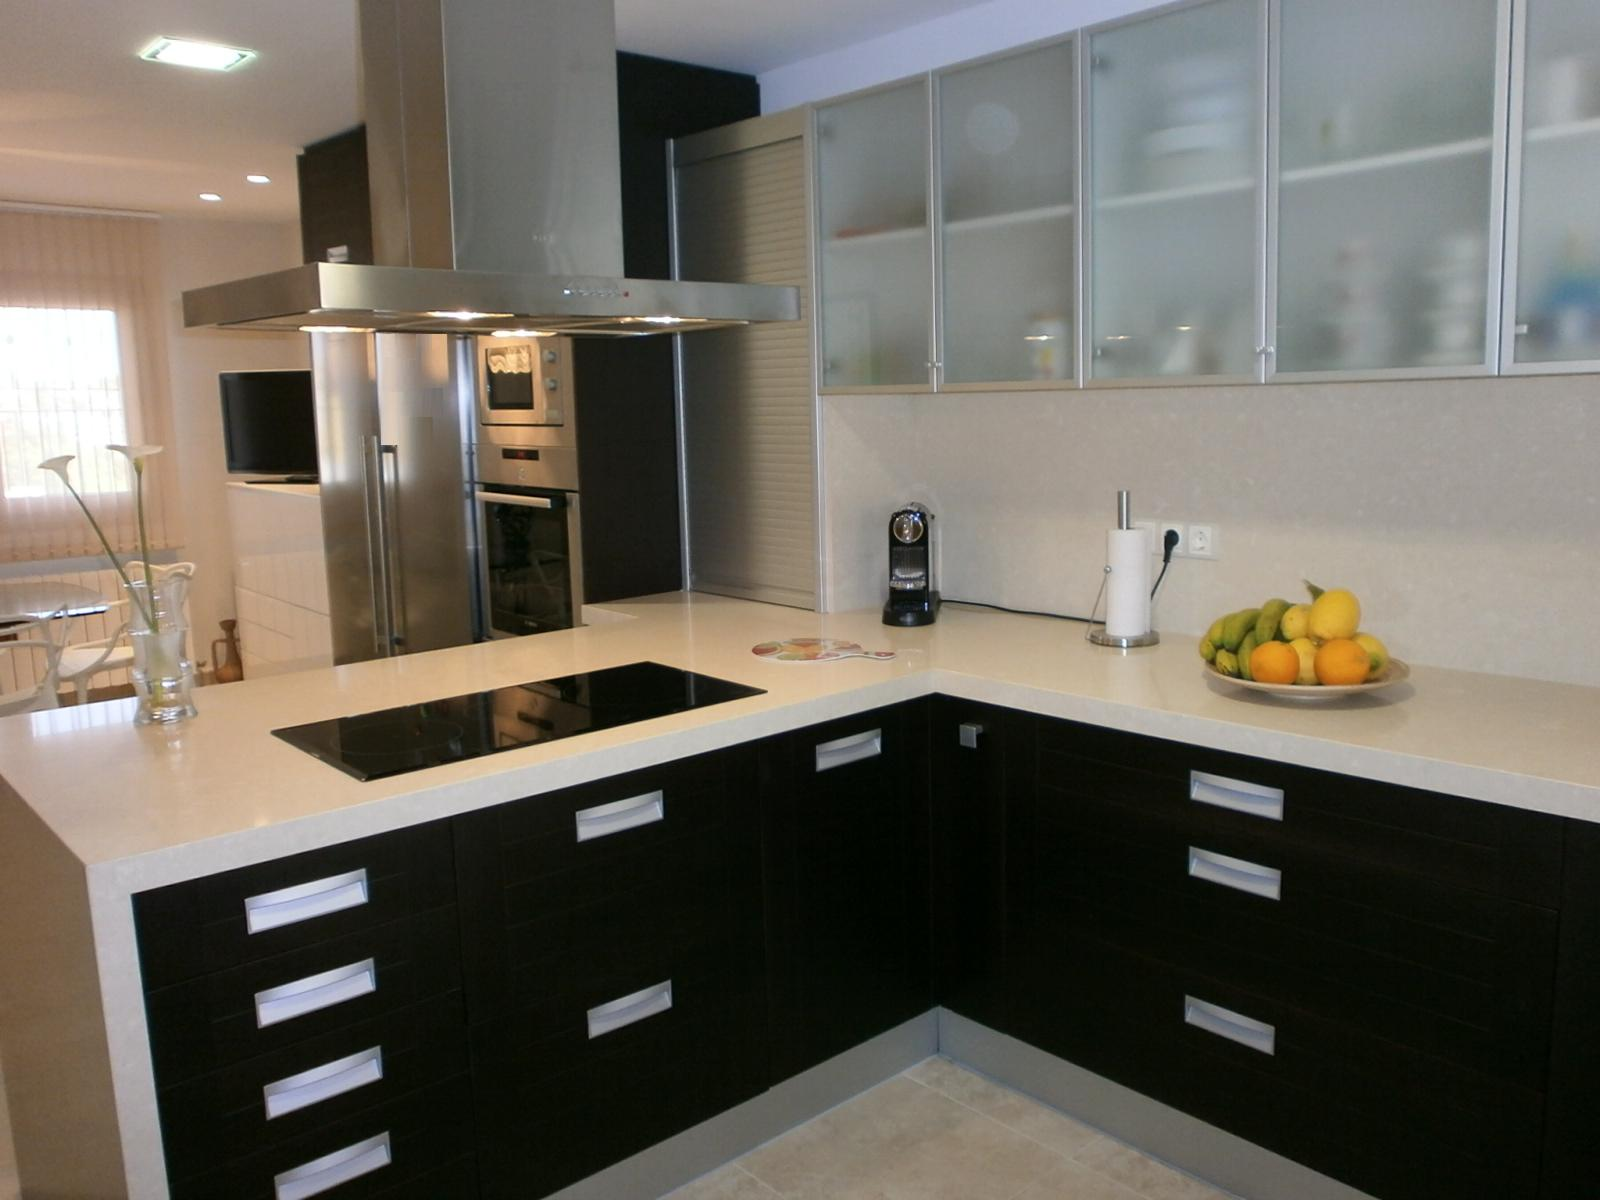 Not for boring black kitchens for Colores para cocinas modernas pequenas